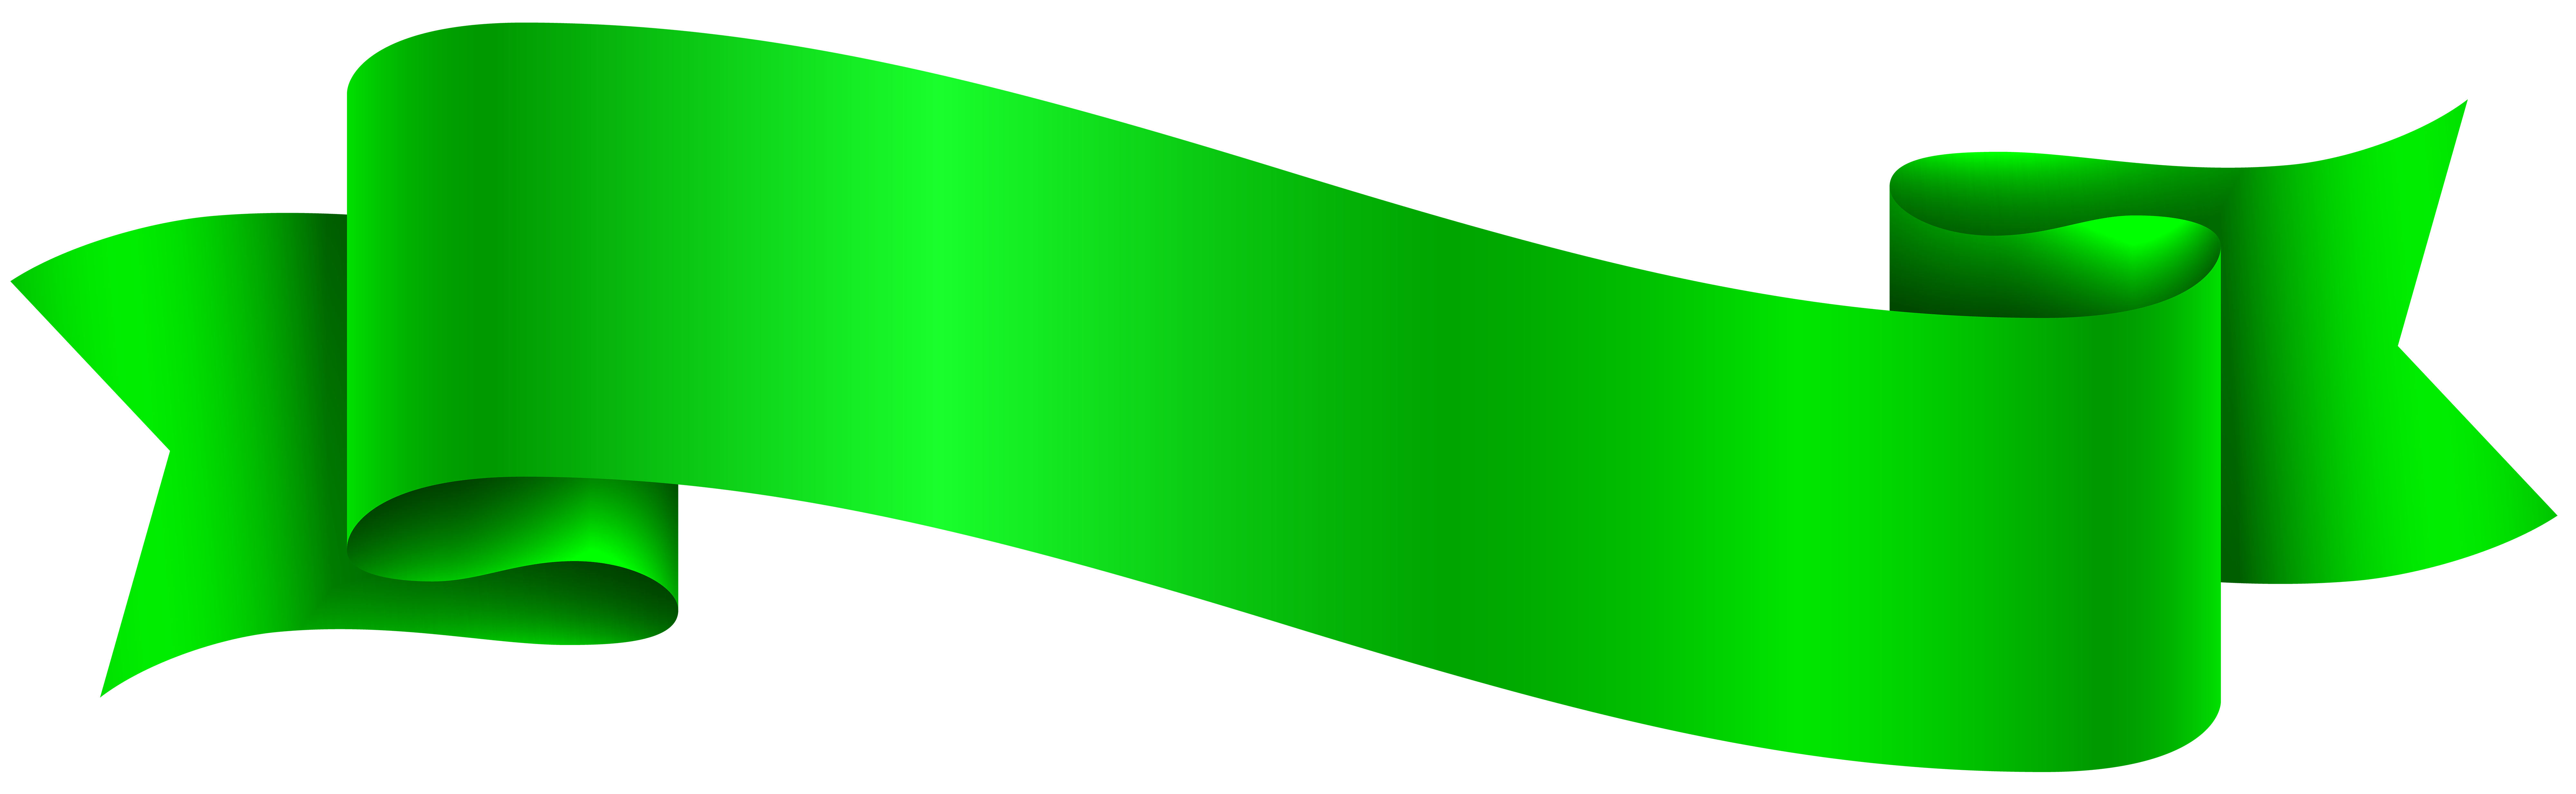 Green transparent png clip. Waves clipart banner